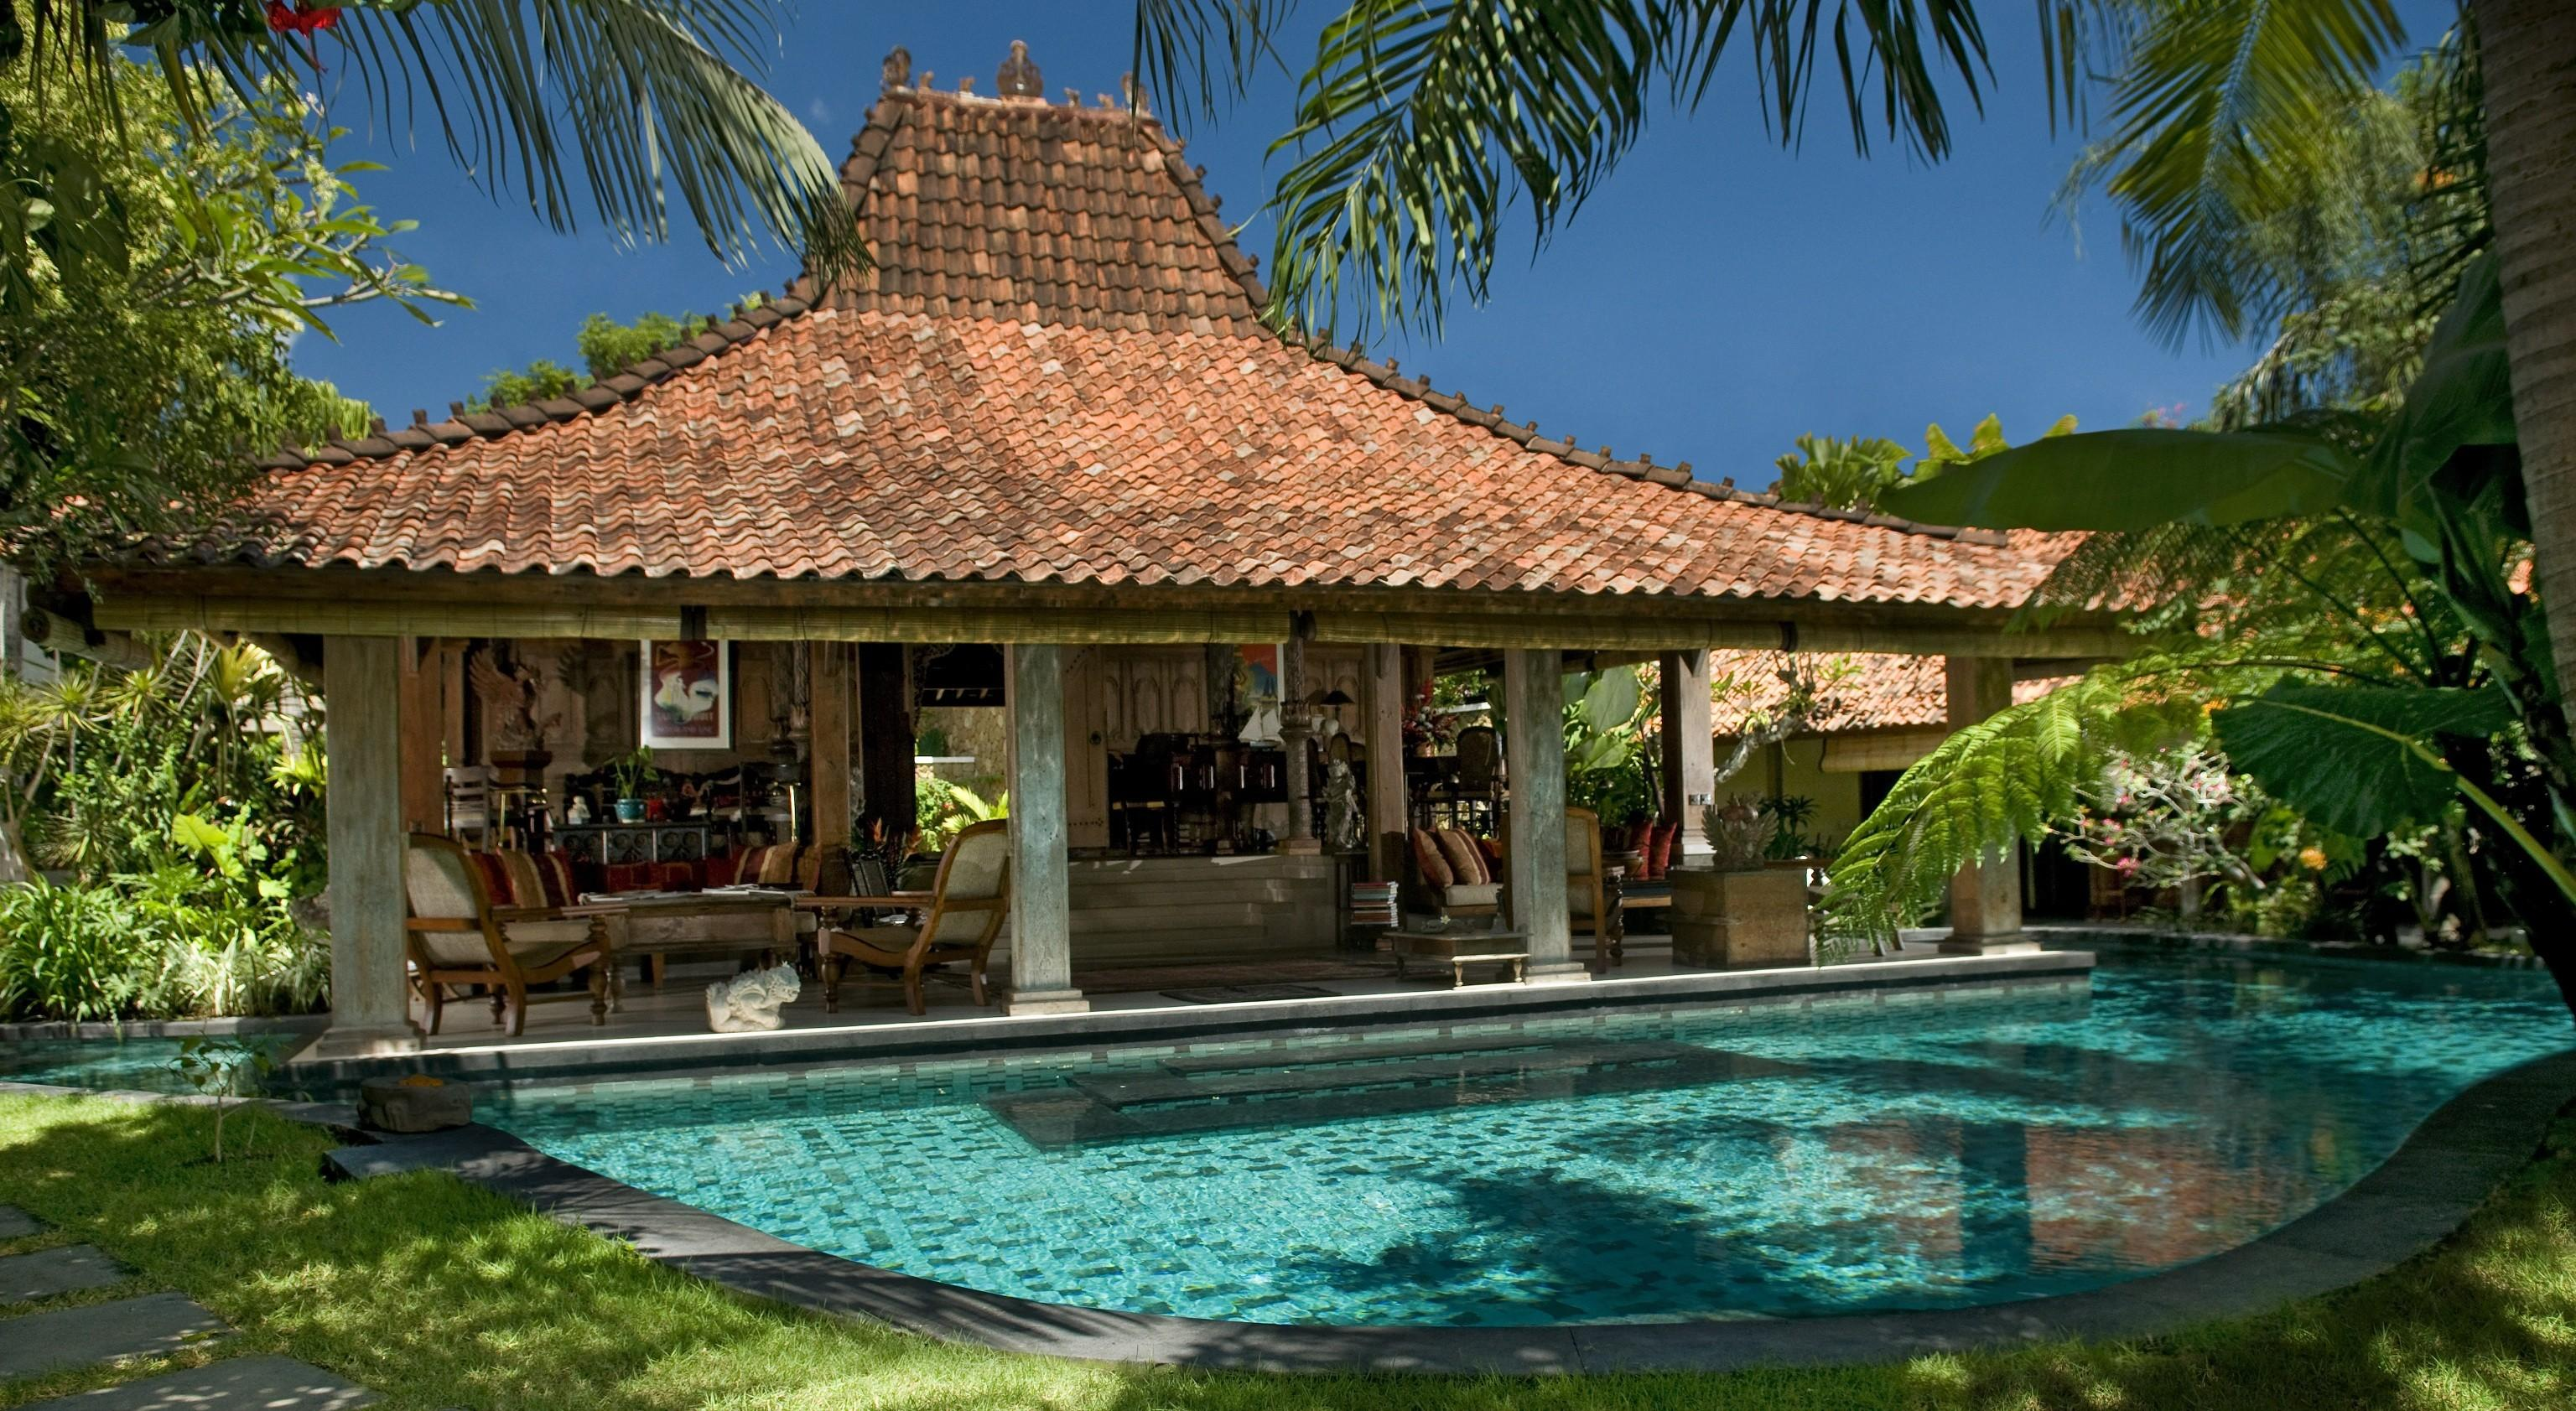 Bali Inspired Decorating Your Home